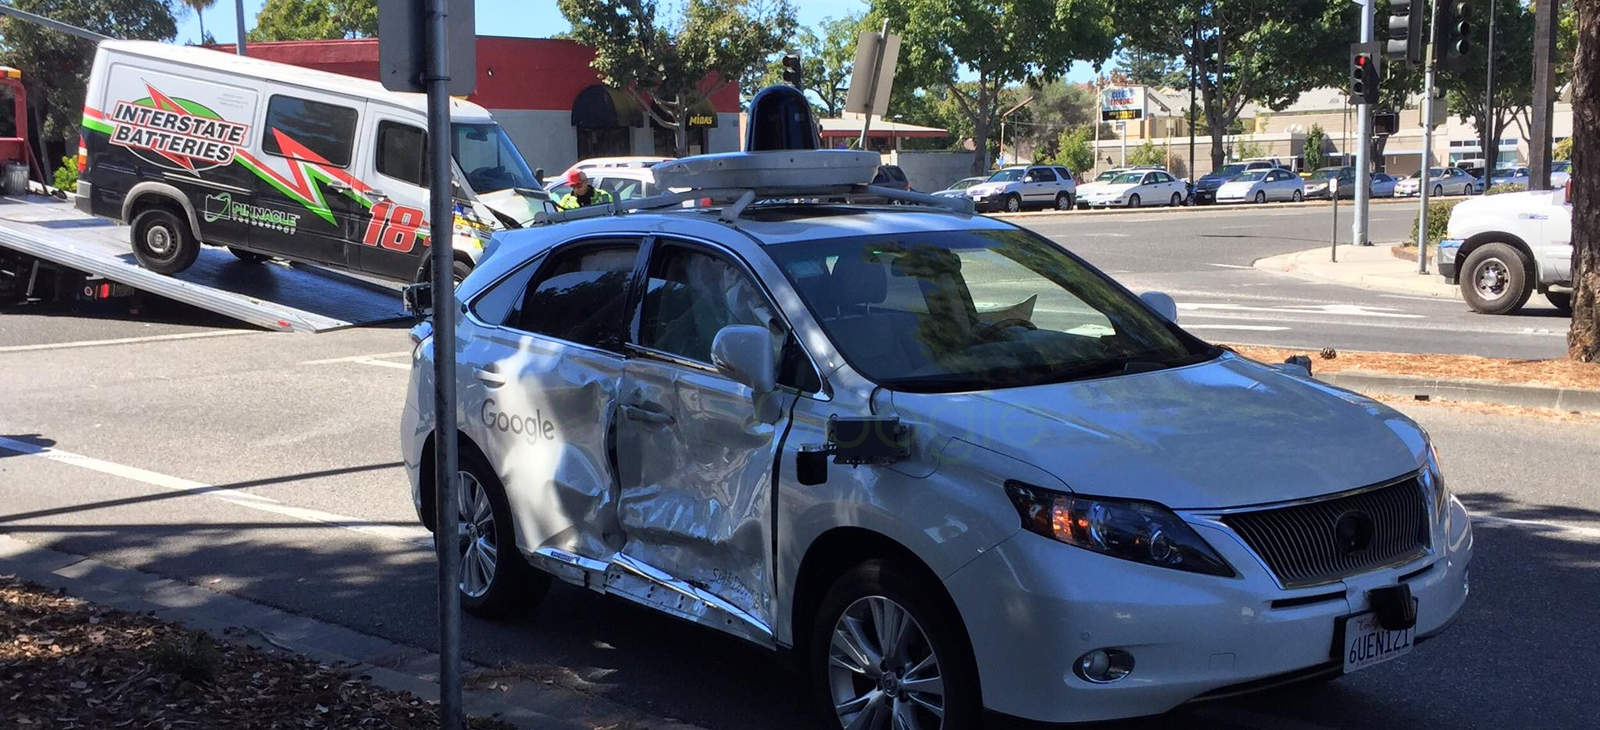 google-self-driving-car-intersection-accident